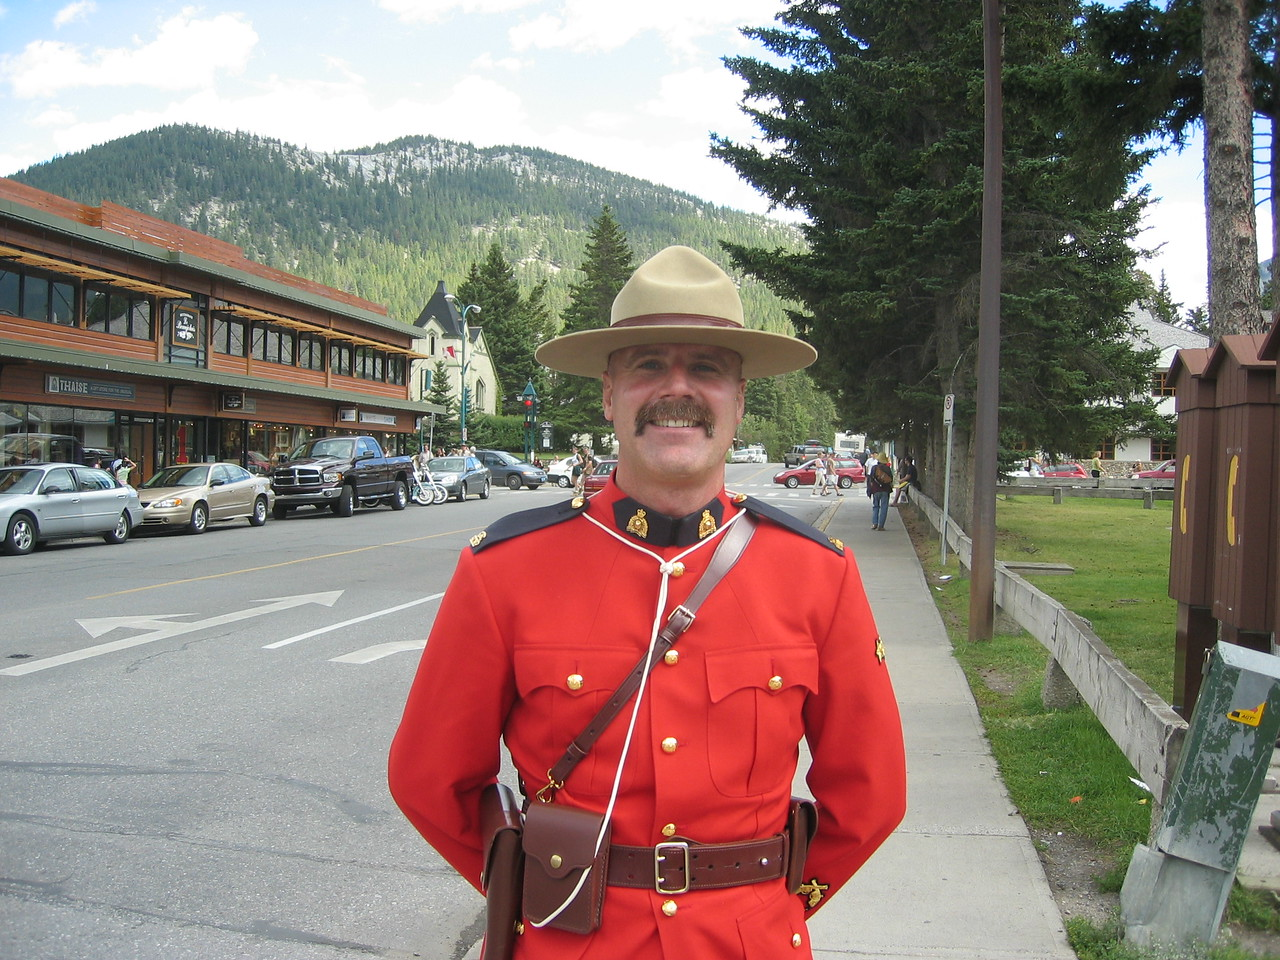 Mountie in Jasper, Alberta